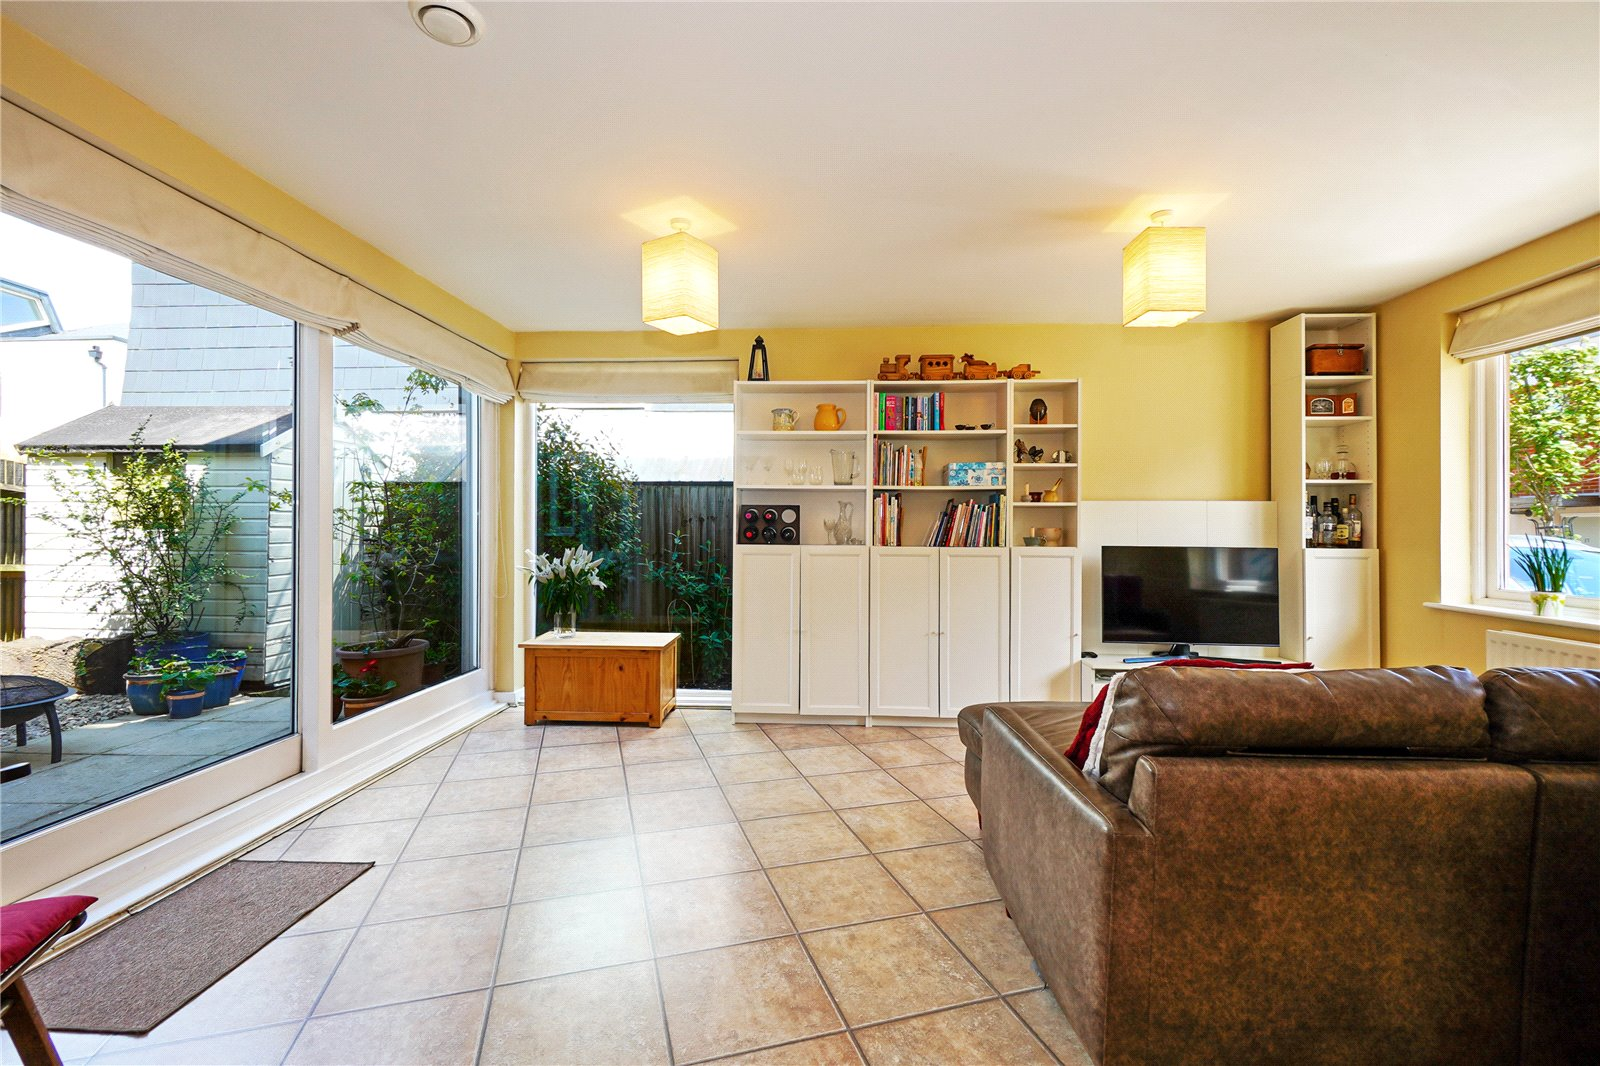 3 bed house for sale in Duke of York Way, Coxheath, ME17